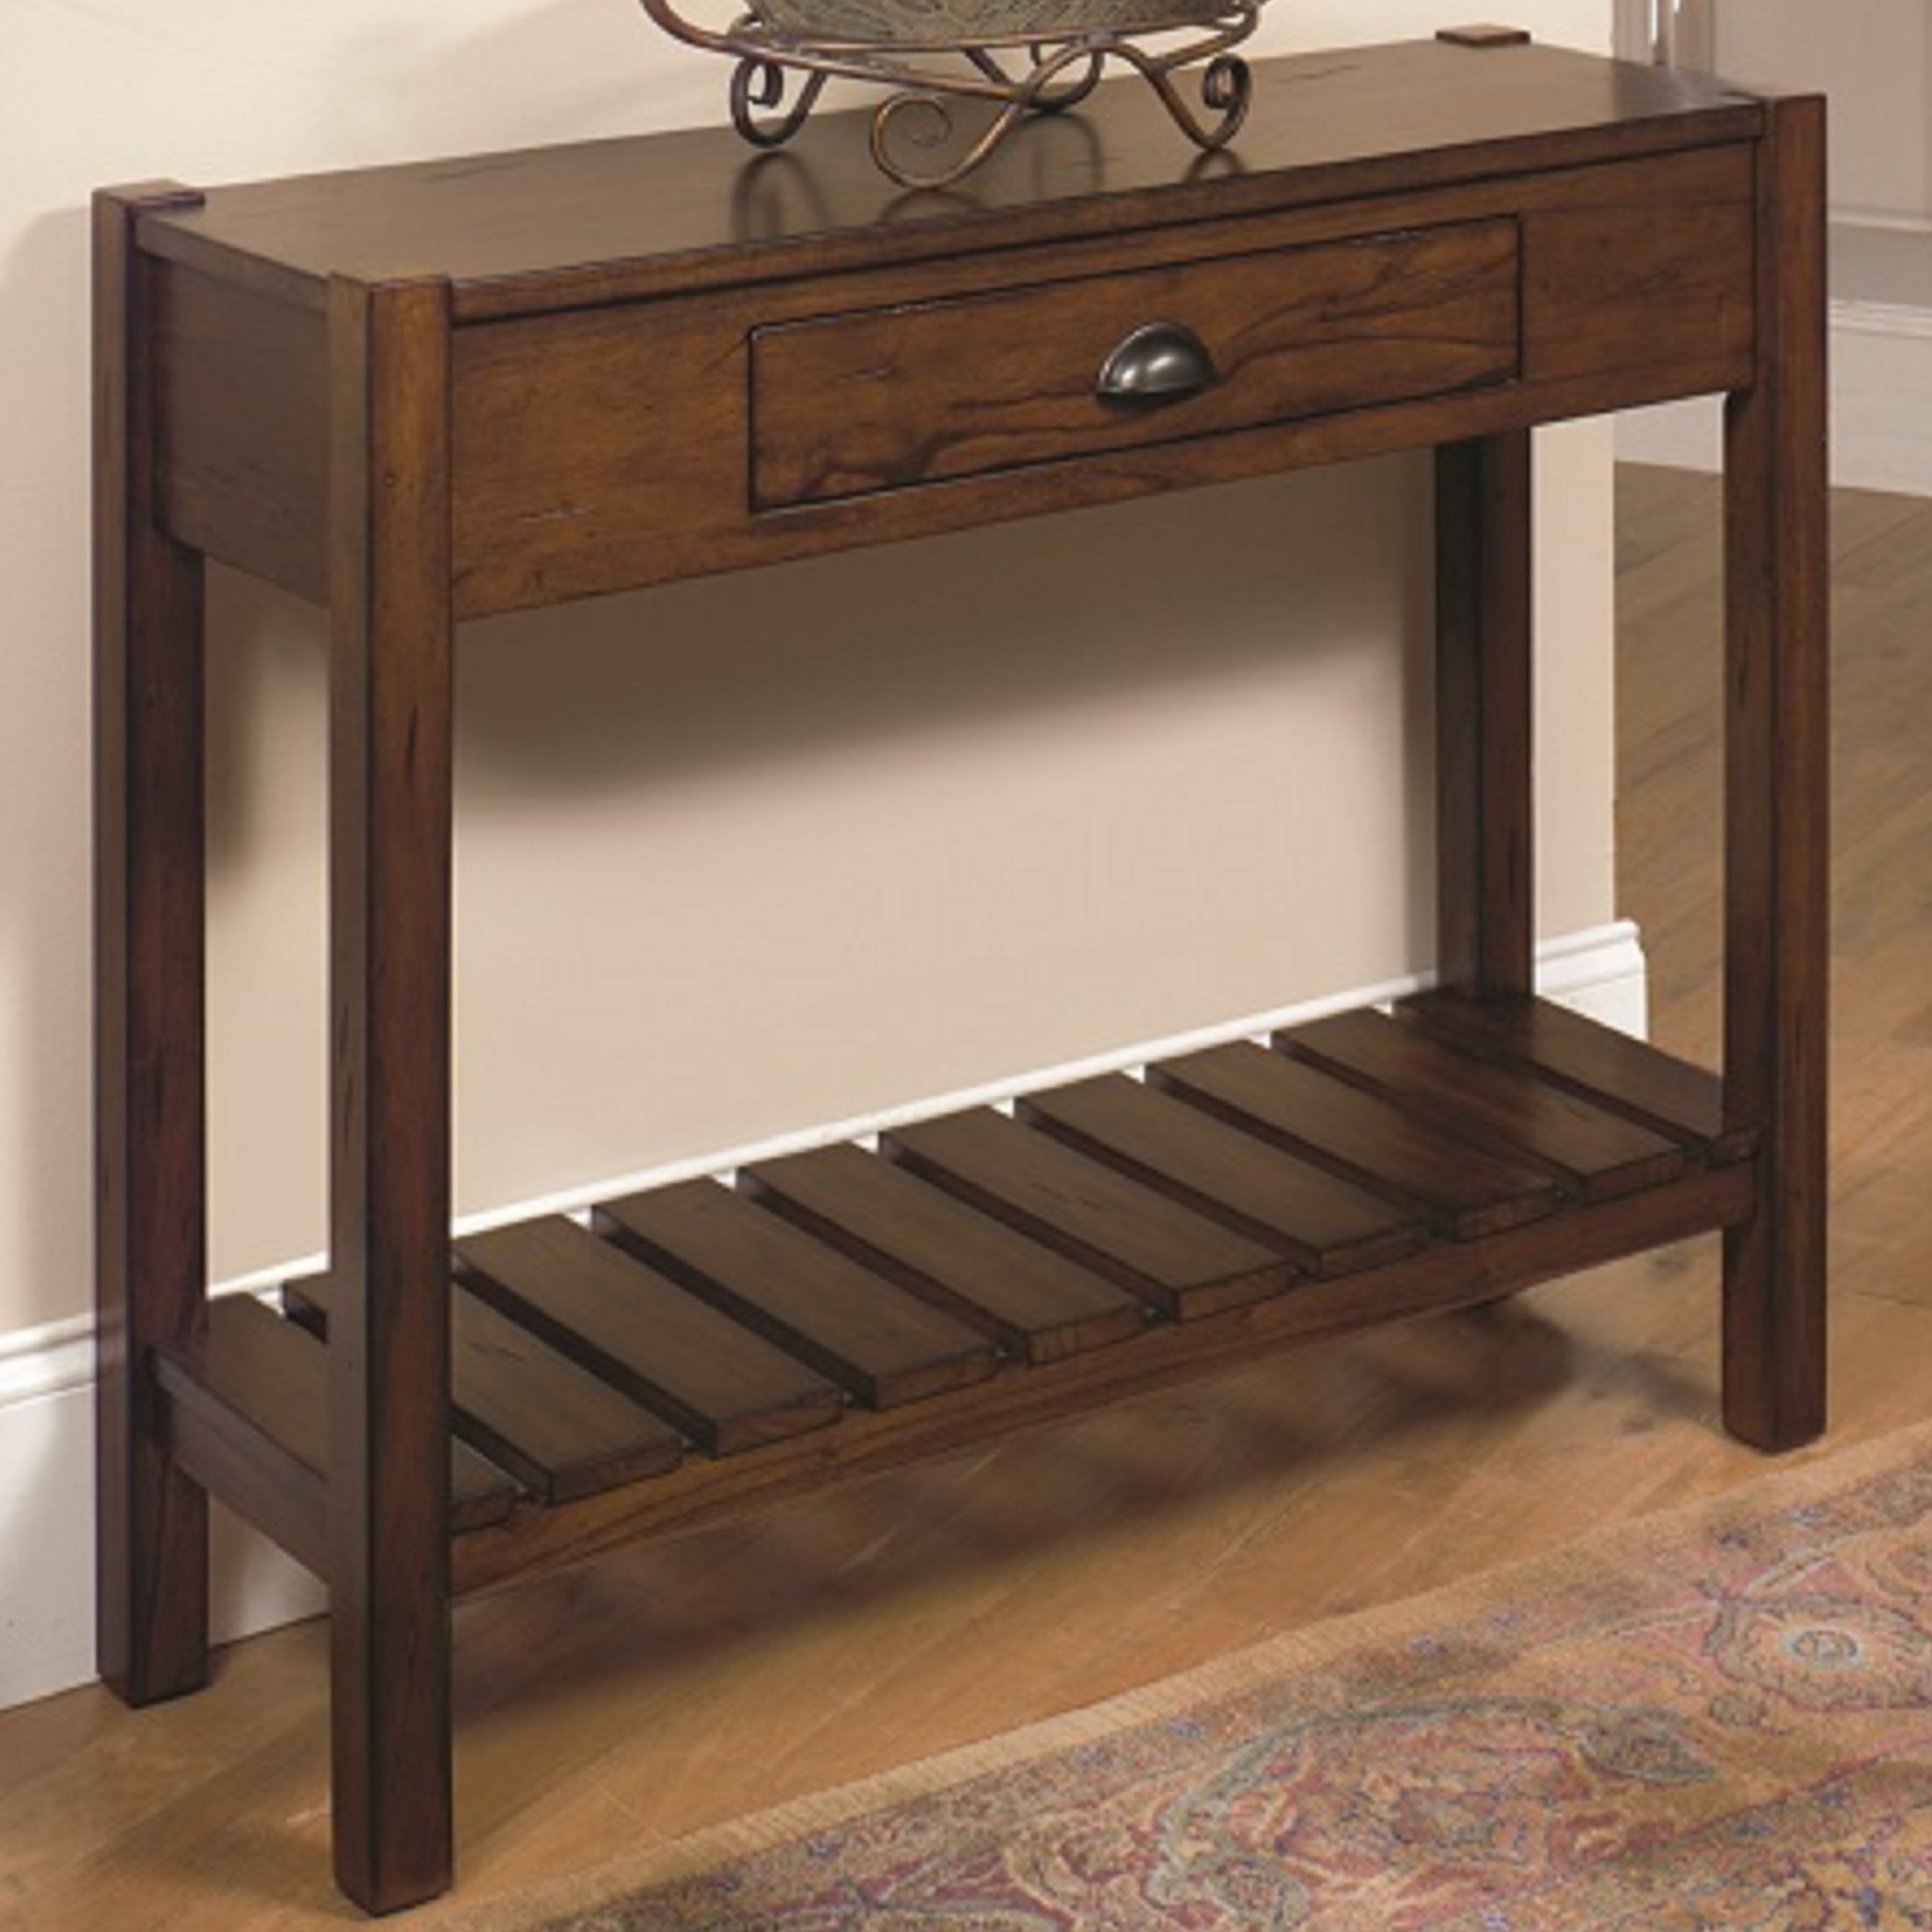 Small Corner Console Table | Wayfair Throughout Layered Wood Small Square Console Tables (View 2 of 20)